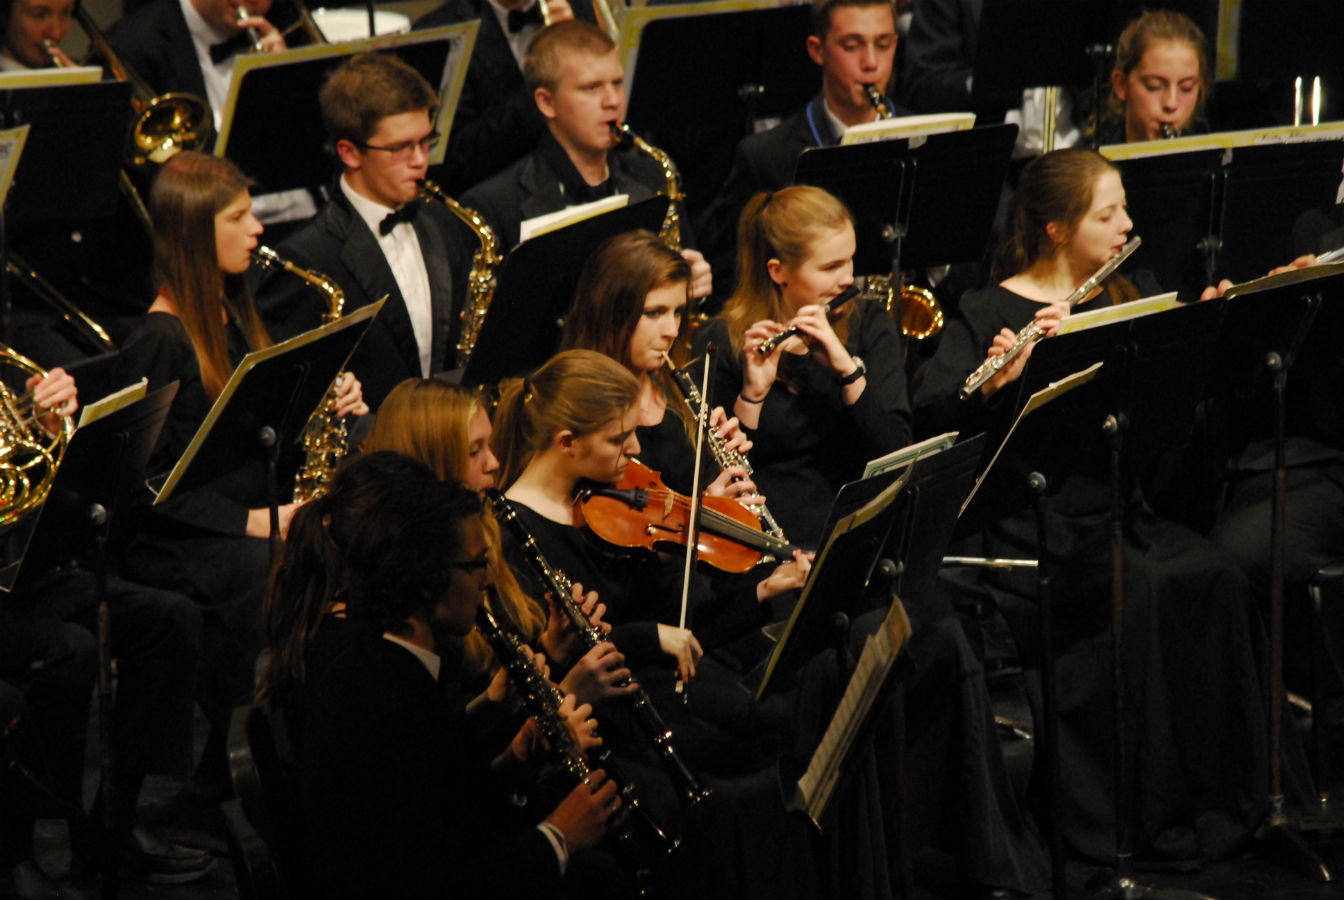 The concert band plays at their annual holiday concert in the auditorium.